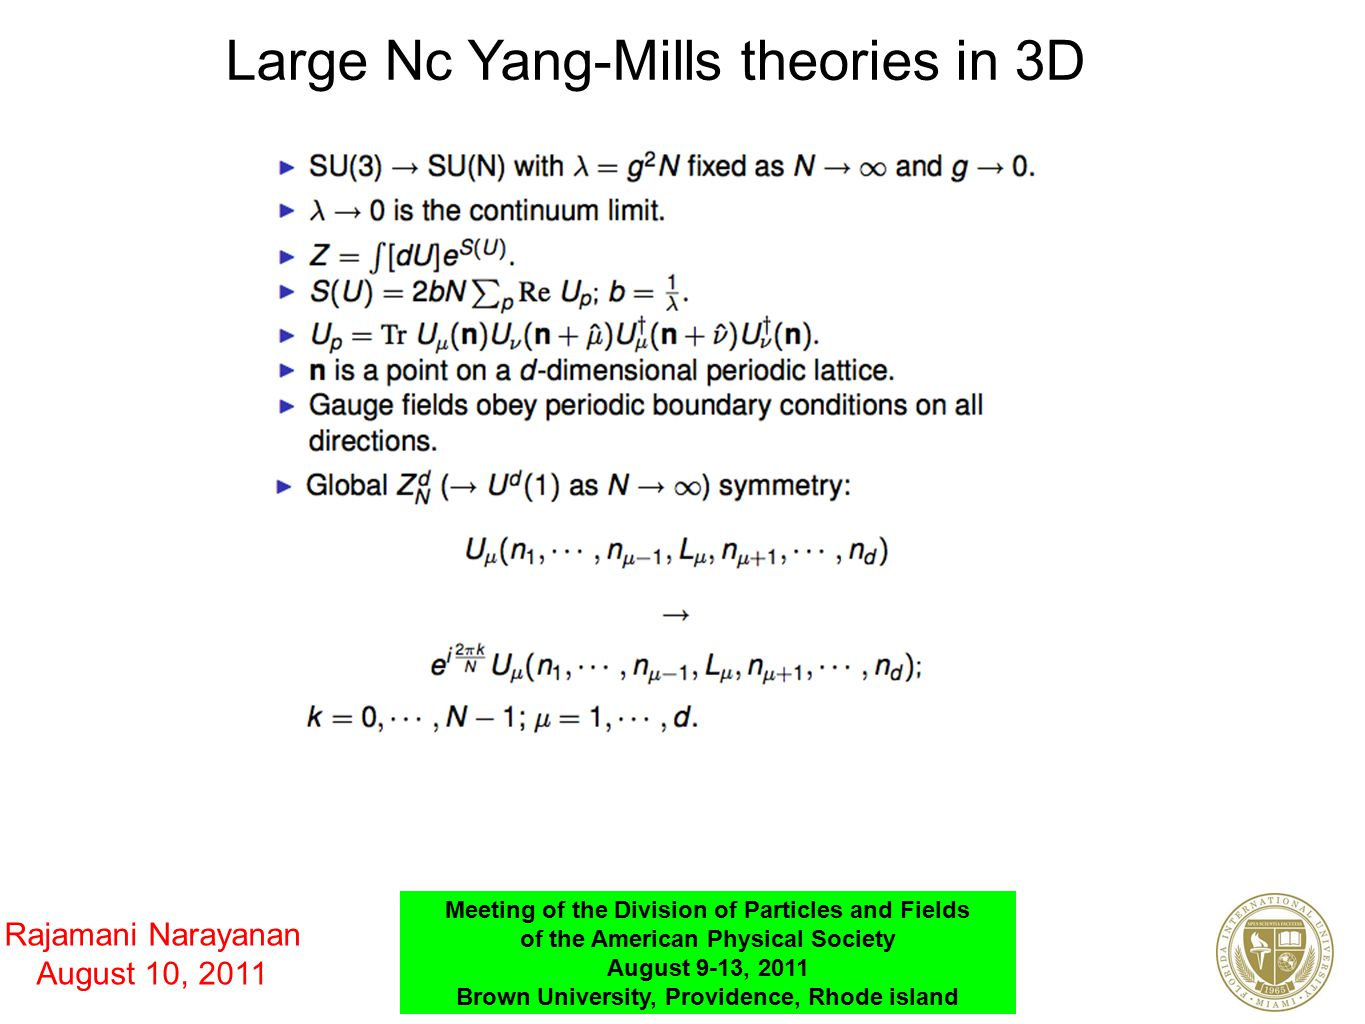 Rajamani Narayanan August 10, 2011 Meeting of the Division of Particles and Fields of the American Physical Society August 9-13, 2011 Brown University, Providence, Rhode island Large Nc Yang-Mills theories in 3D